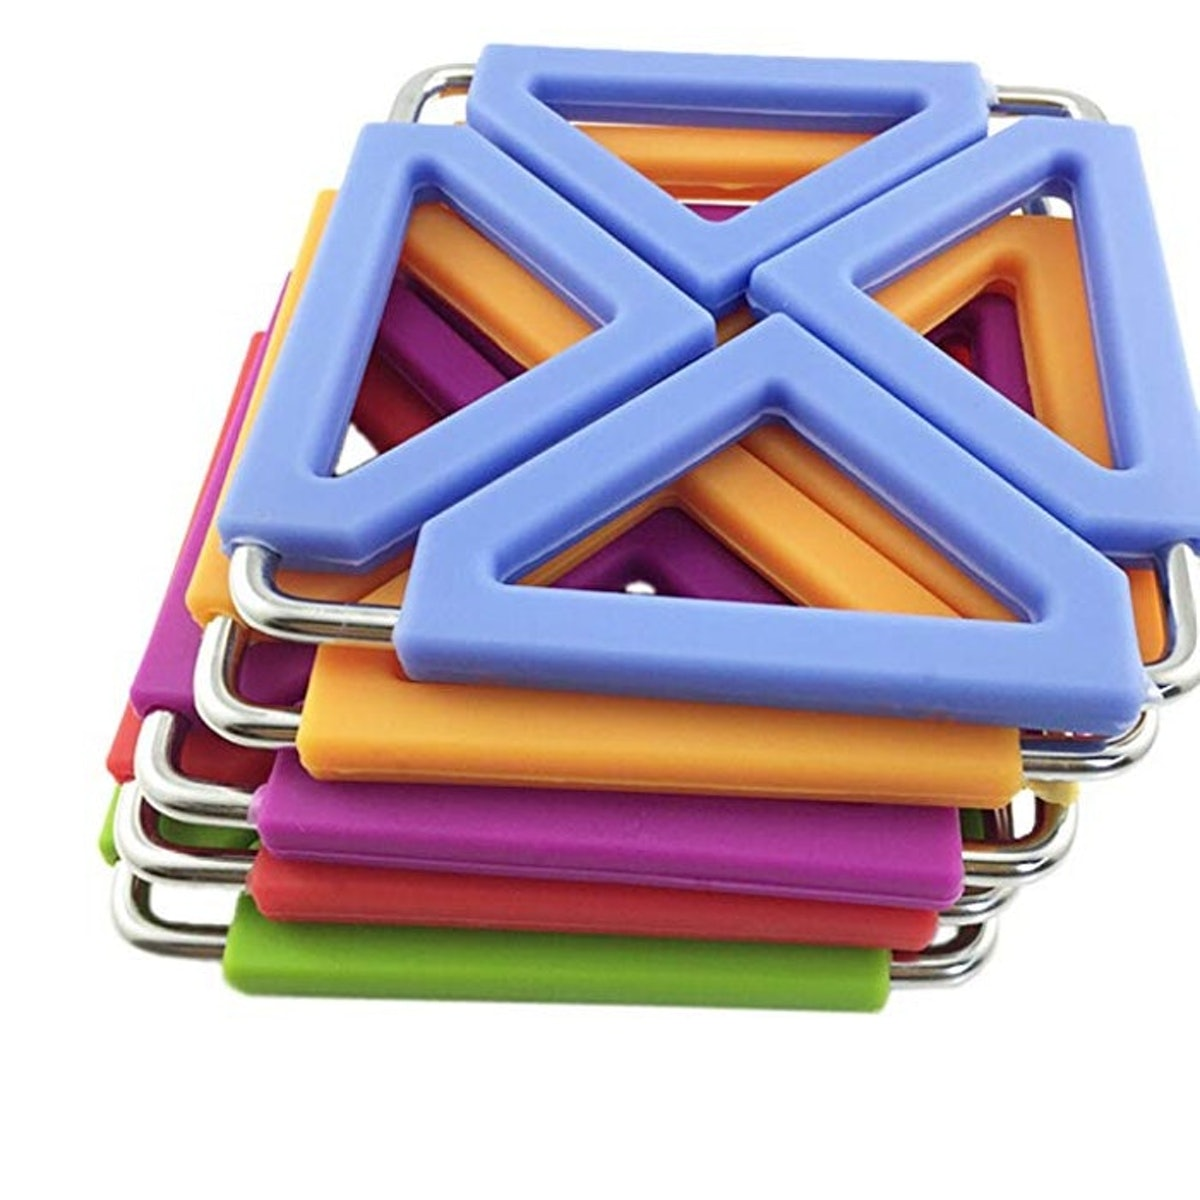 SumDirect Silicone and Stainless Steel Hot Pot Holder (5-Pack)